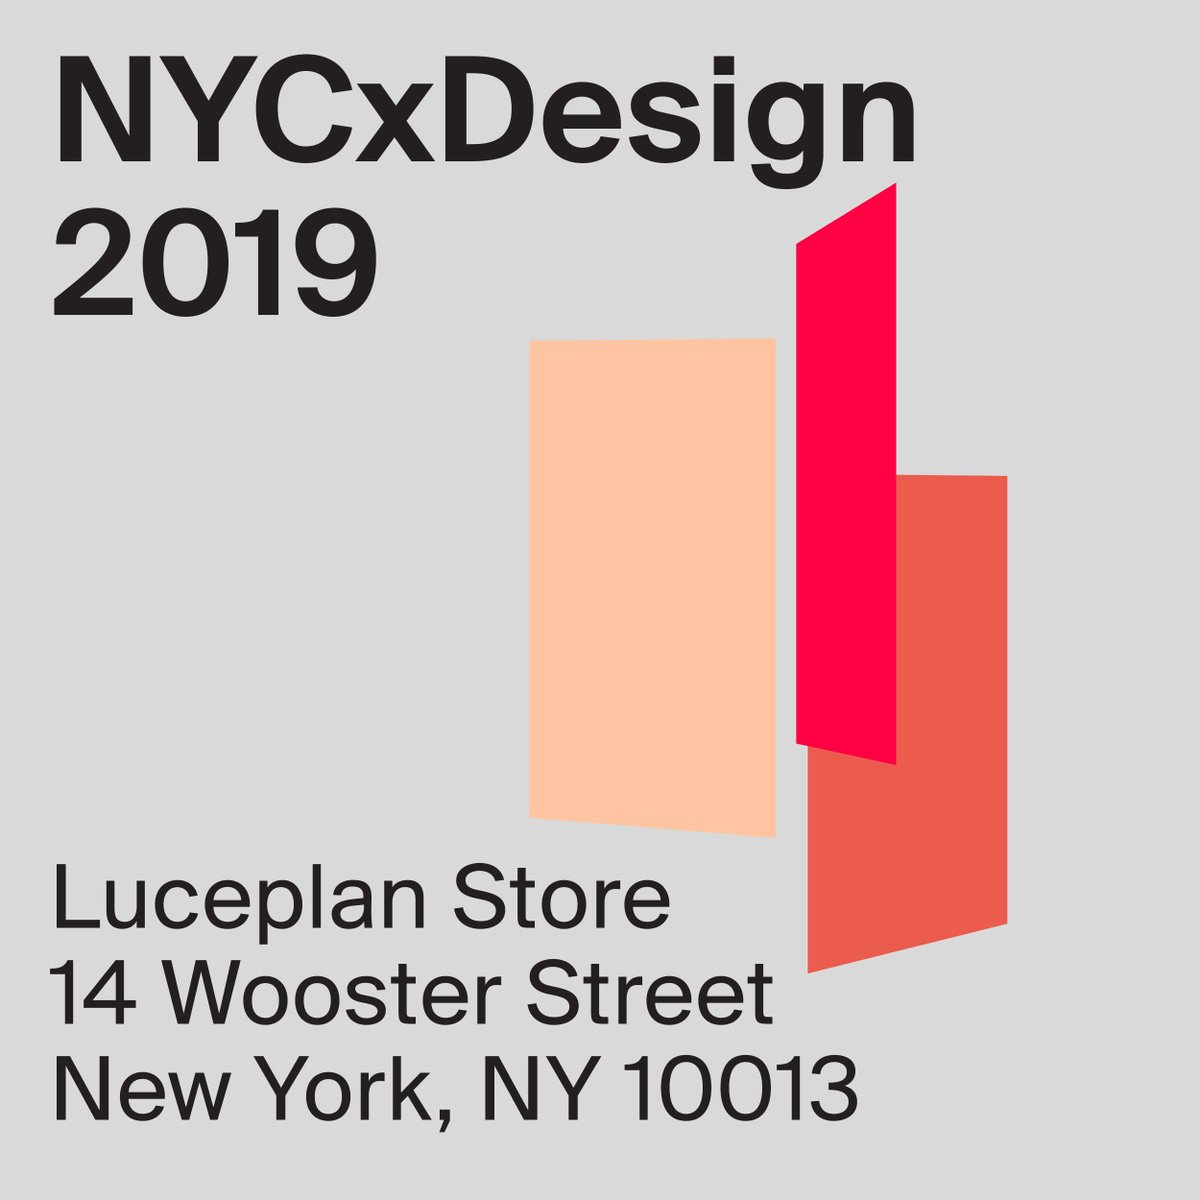 Ready to celebrate with us our launches in New York City for NCYxDesign2019? See you tomorrow at our showroom in Soho! https://t.co/EHY2hYRa09 #ICFF2019 #NCYxDesign #luceplan #trypta https://t.co/cG4nPgiYqO